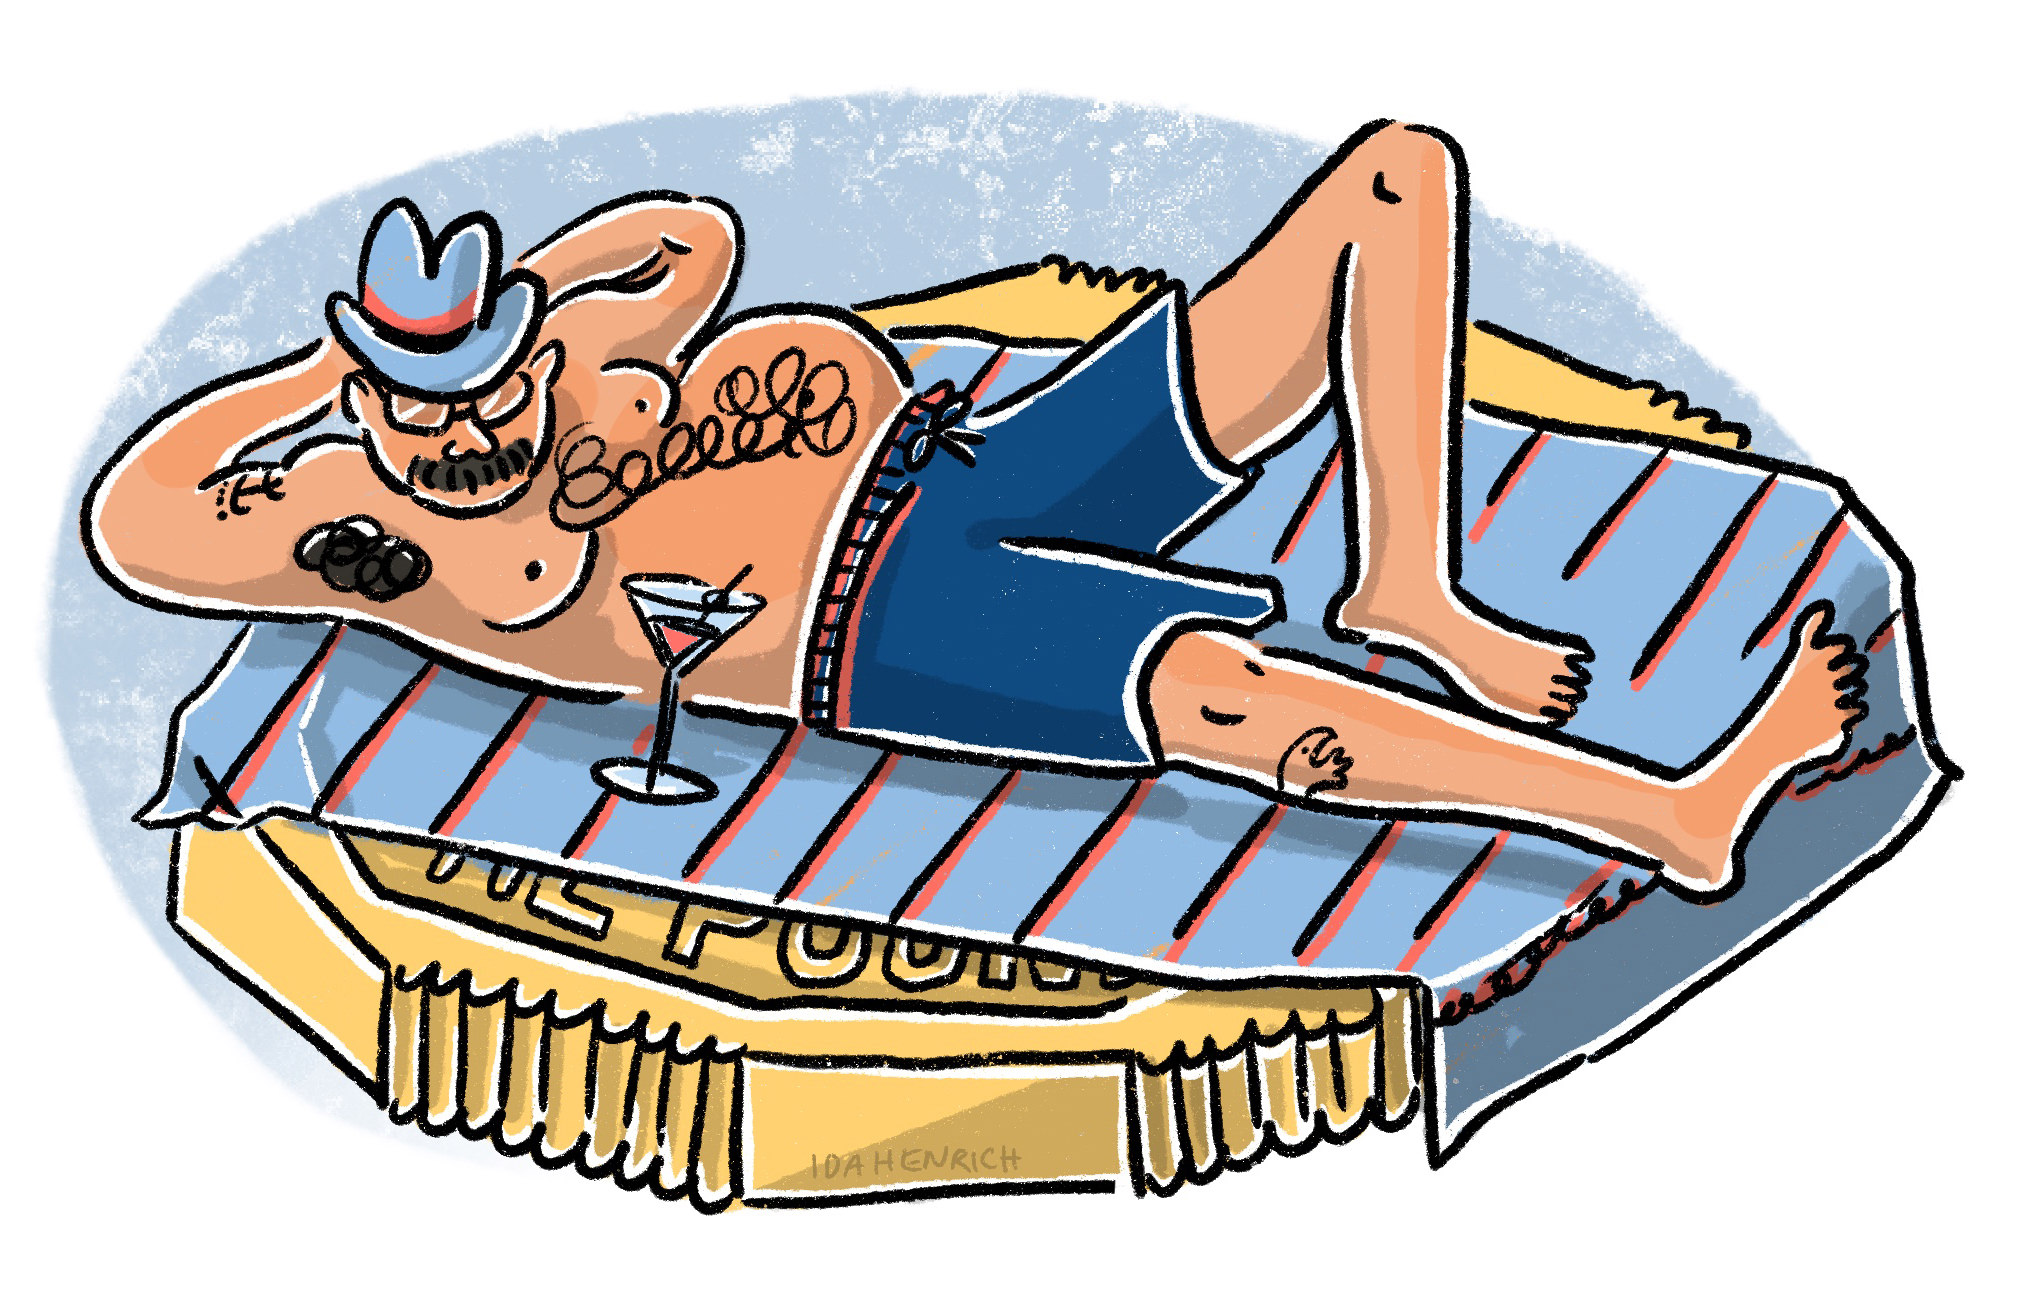 A sunburned man with a mustache and beer belly sunbathing on top of a massive pound coin with a cocktail. The image speaks about wealth, comfort, holiday and richness. ©Ida Henrich.